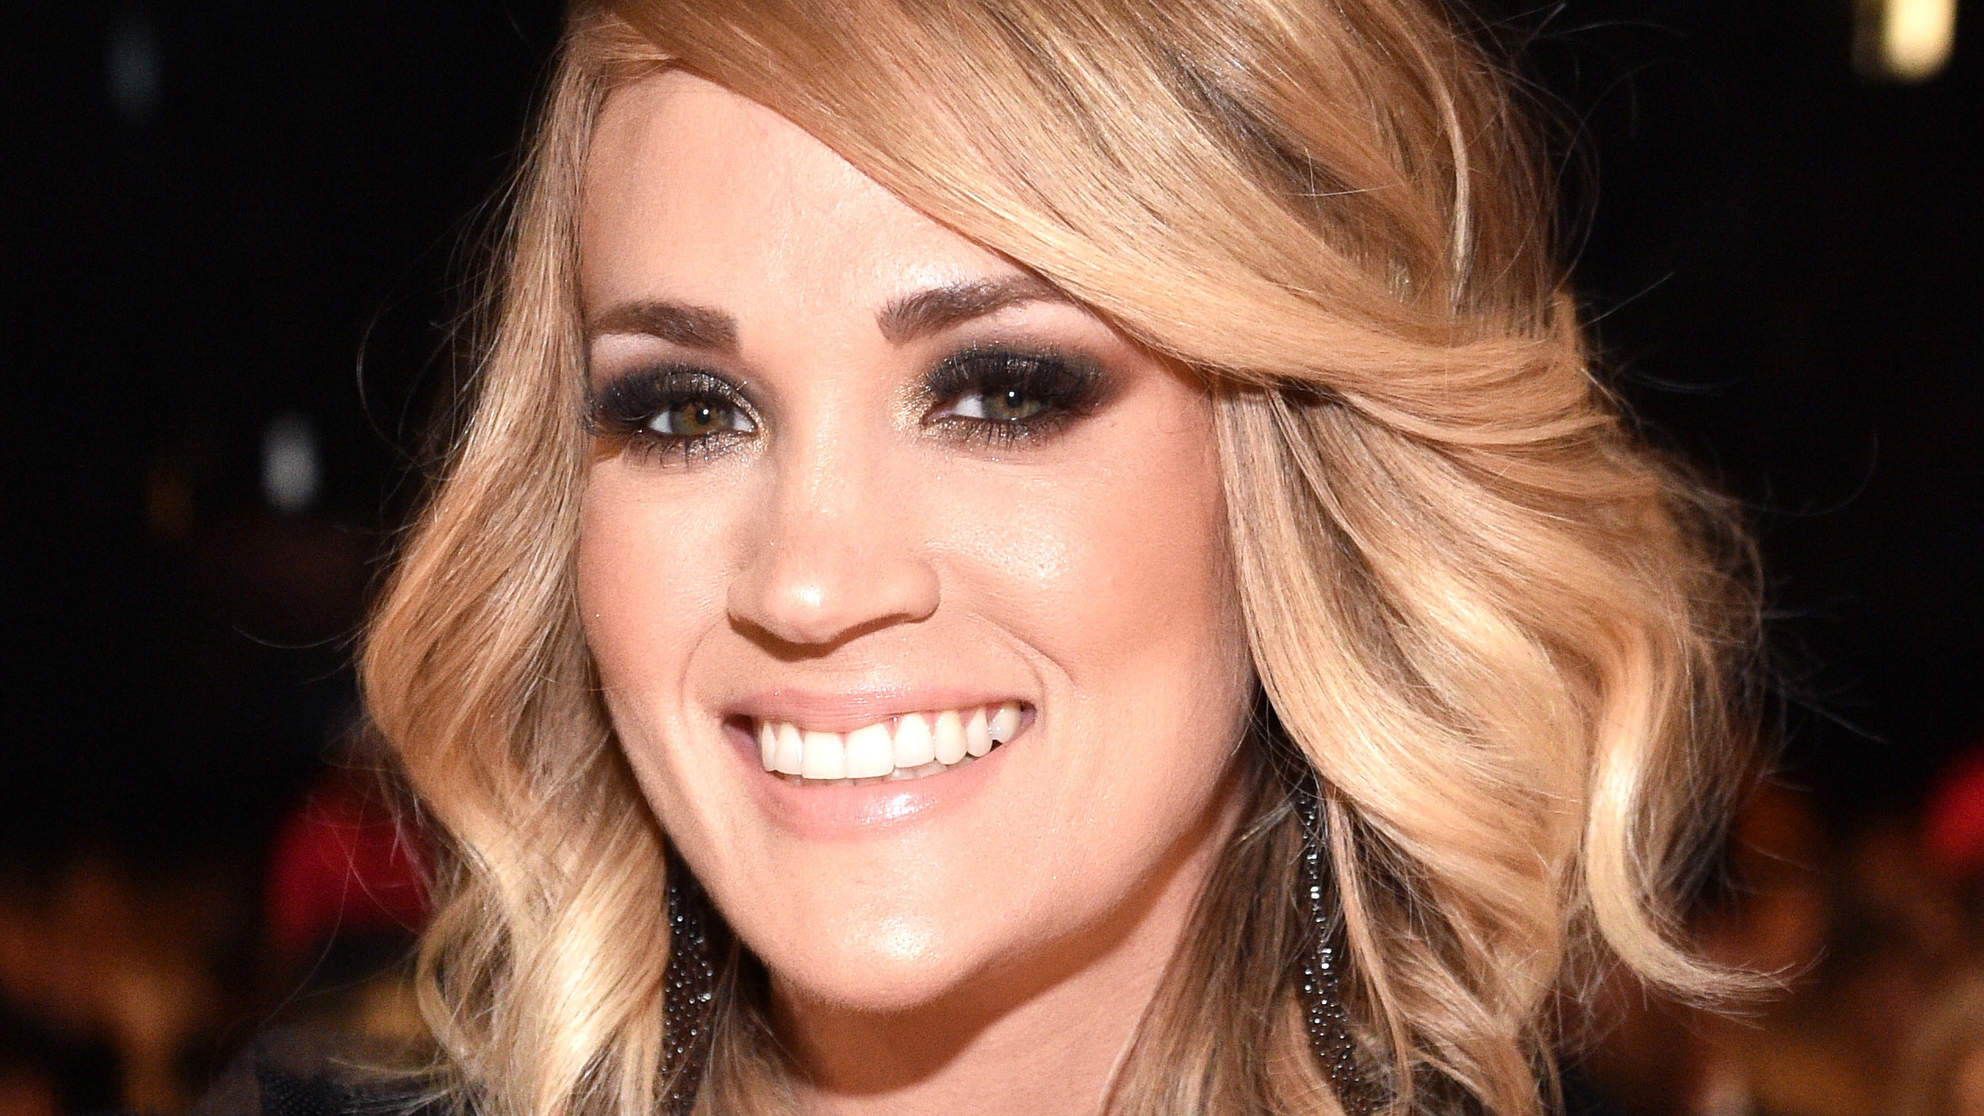 Carrie Underwood Shares That 'Bouncing Back' After Her Second Pregnancy Hasn't Been Easy